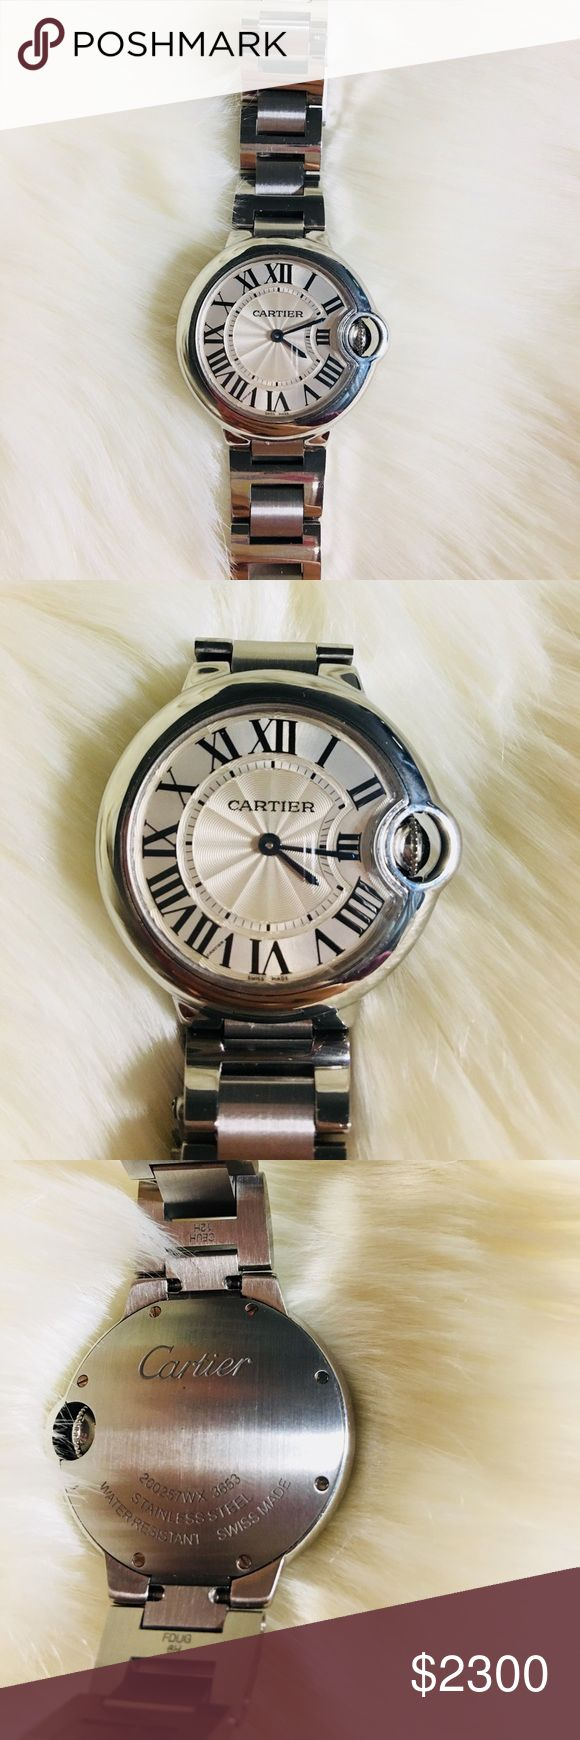 Cartier ballon bleu de watch 33mm, quartz movement, steel. Can't find the box or the paperwork. Just the watch. Only used for a few times. Cartier Accessories Watches